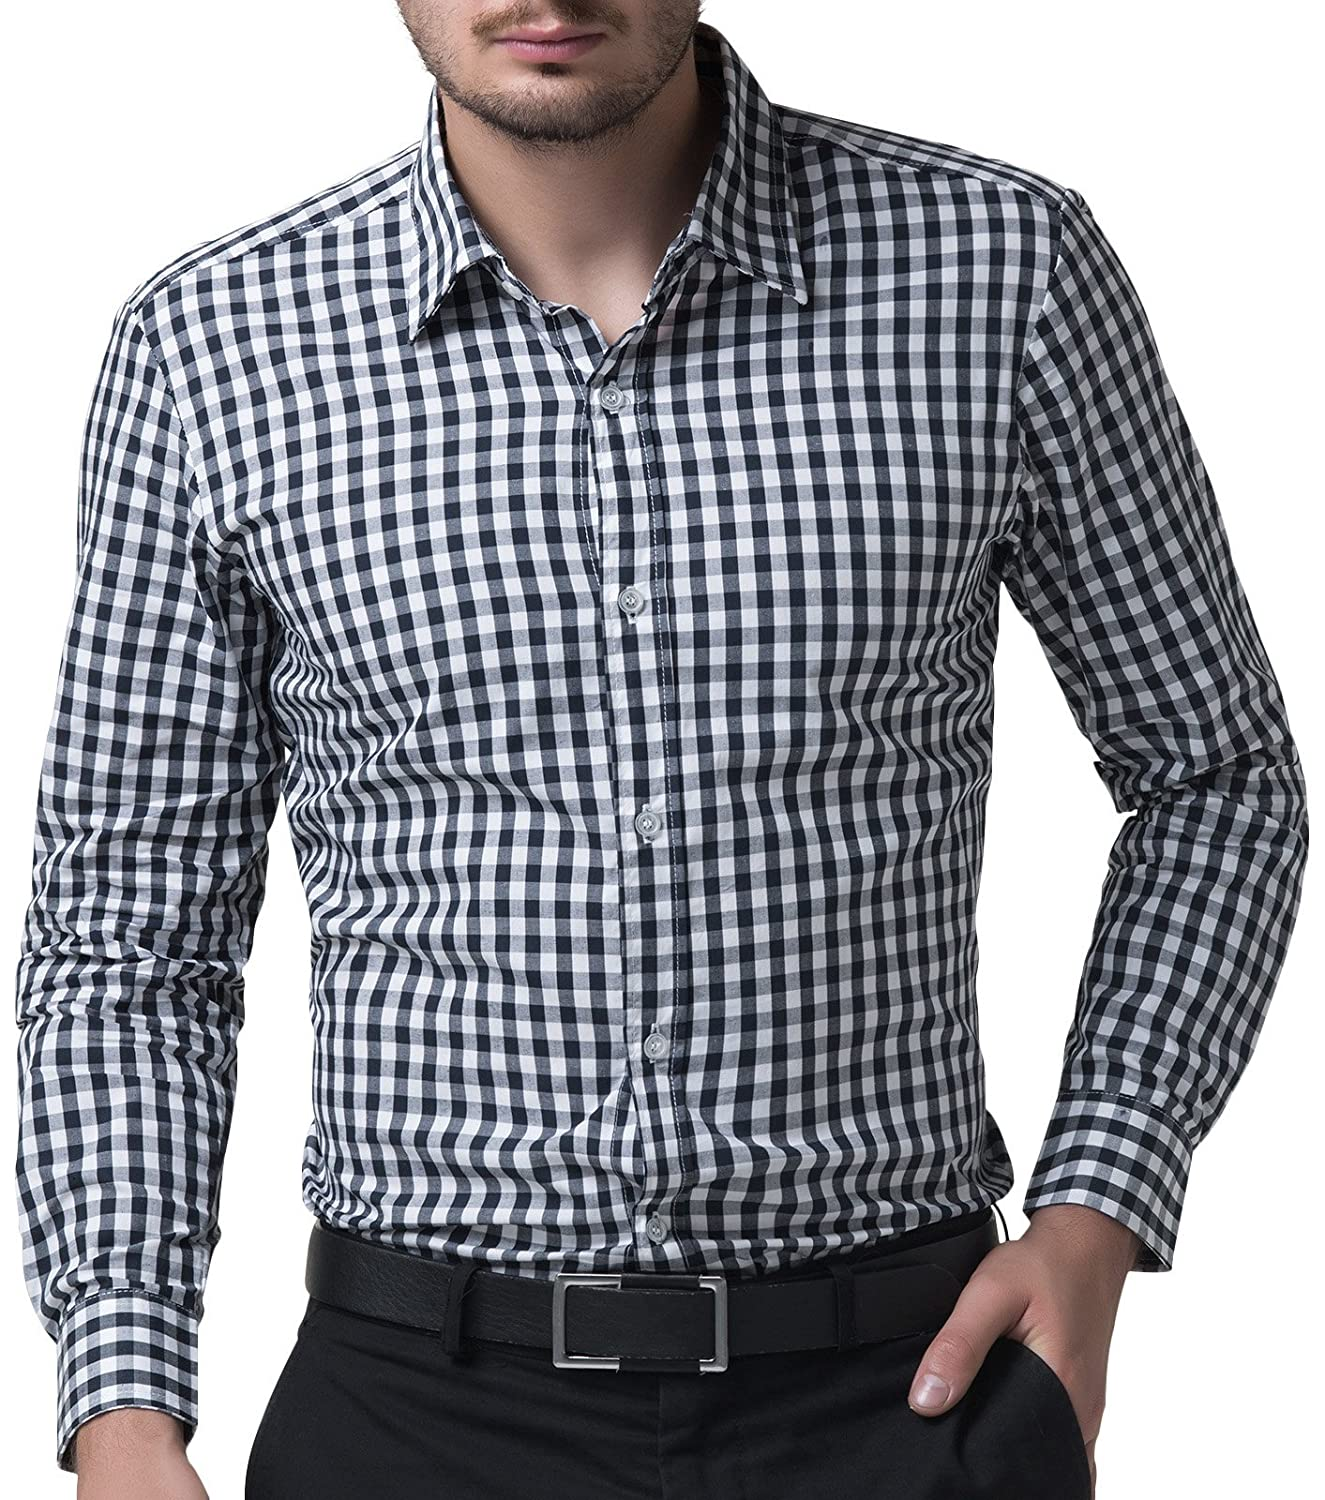 55017d18 These premium plaid dress shirts are designed by PJ Menswear and are  versatile pieces that will add a touch of chic to your off-duty or office  looks.